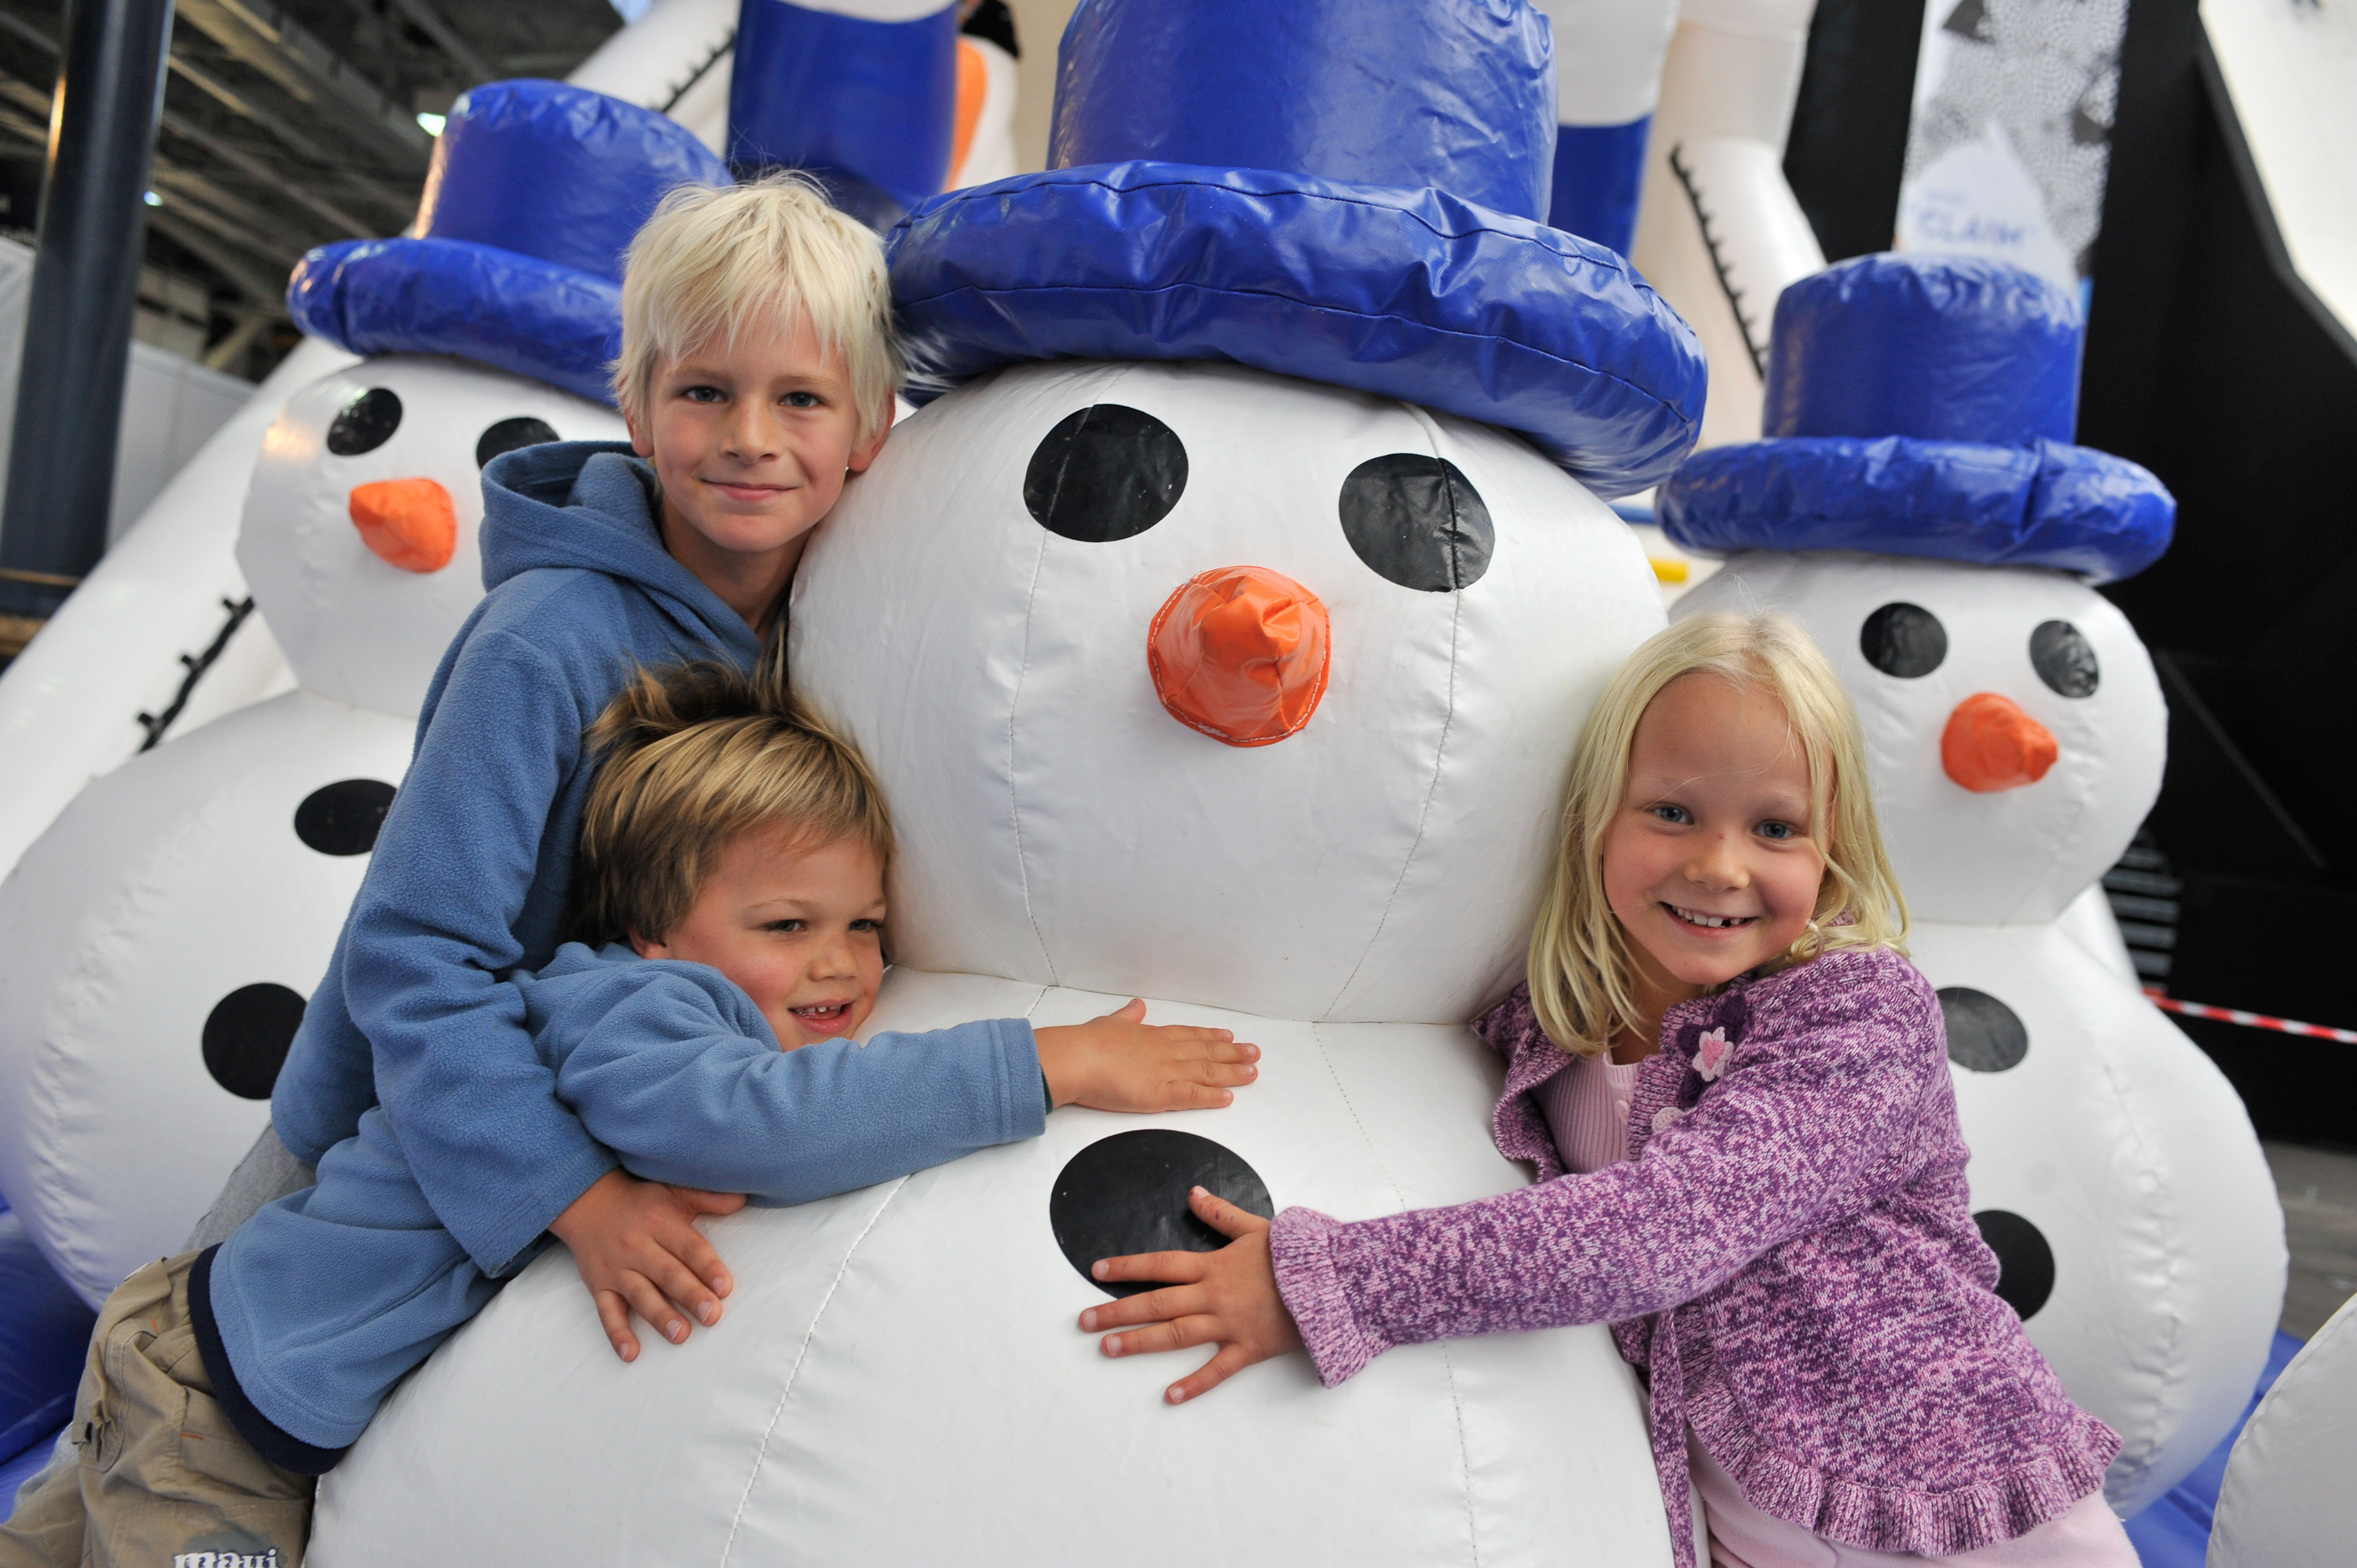 Twelve reasons to bring the family to the London Ski Show